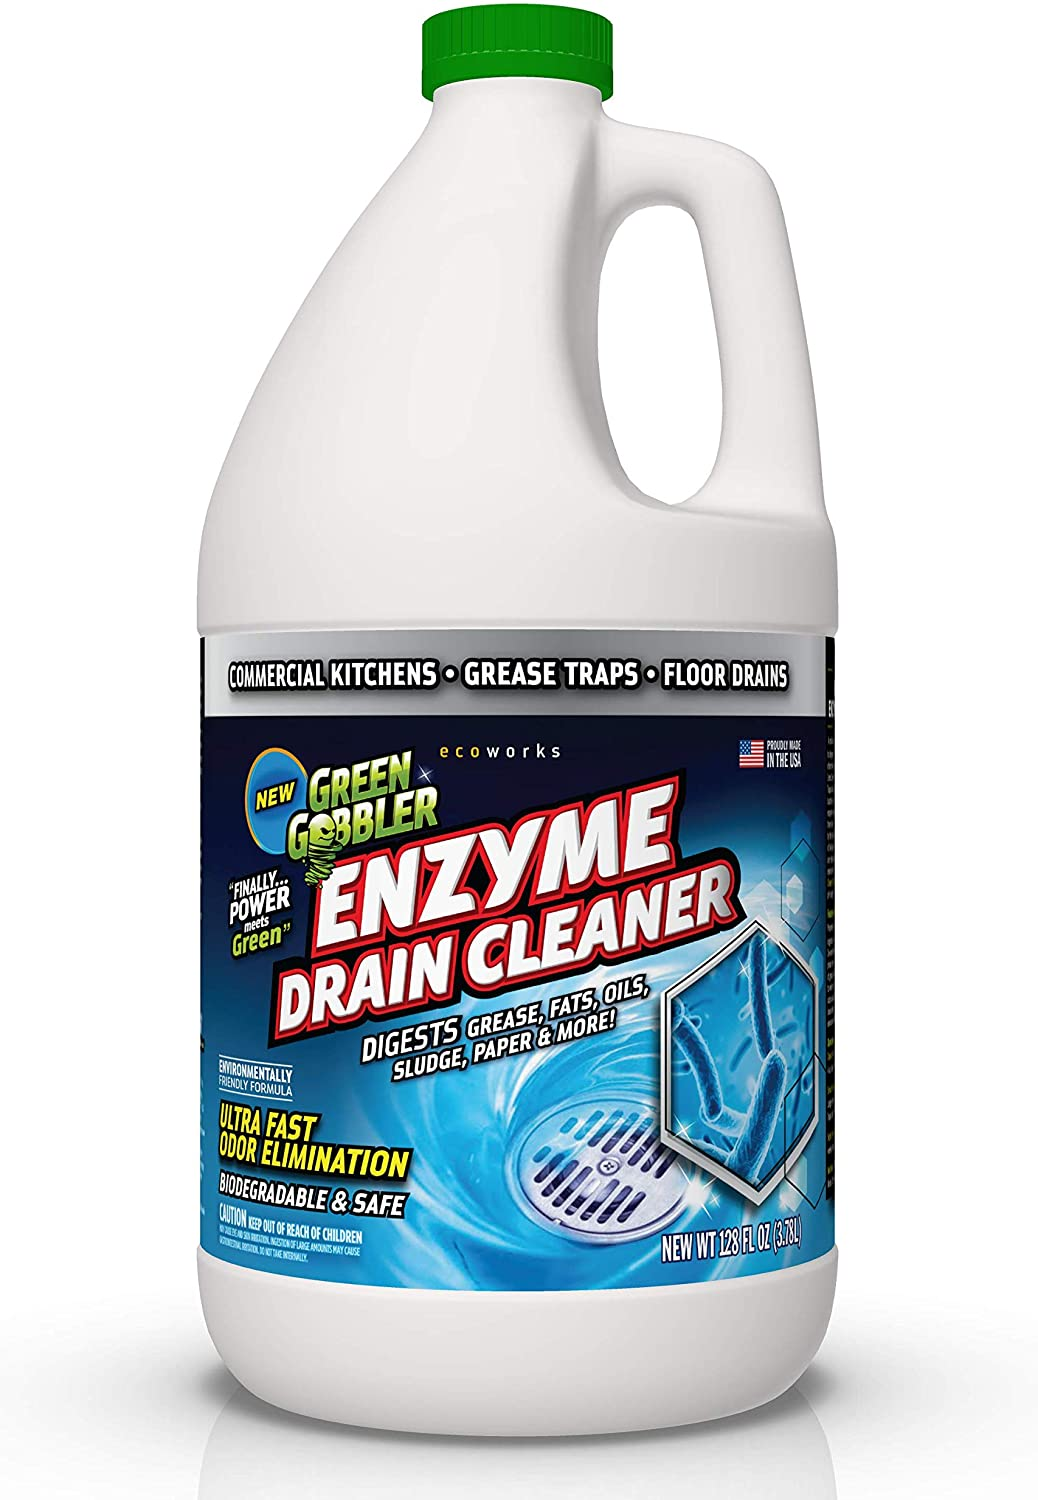 Green Gobbler ENZYMES for Grease Trap & Sewer - Controls Foul Odors & Breaks Down Grease, Paper, Fat & Oil in Sewer Lines, Septic Tanks & Grease Traps (1 Gallon): Health & Personal Care